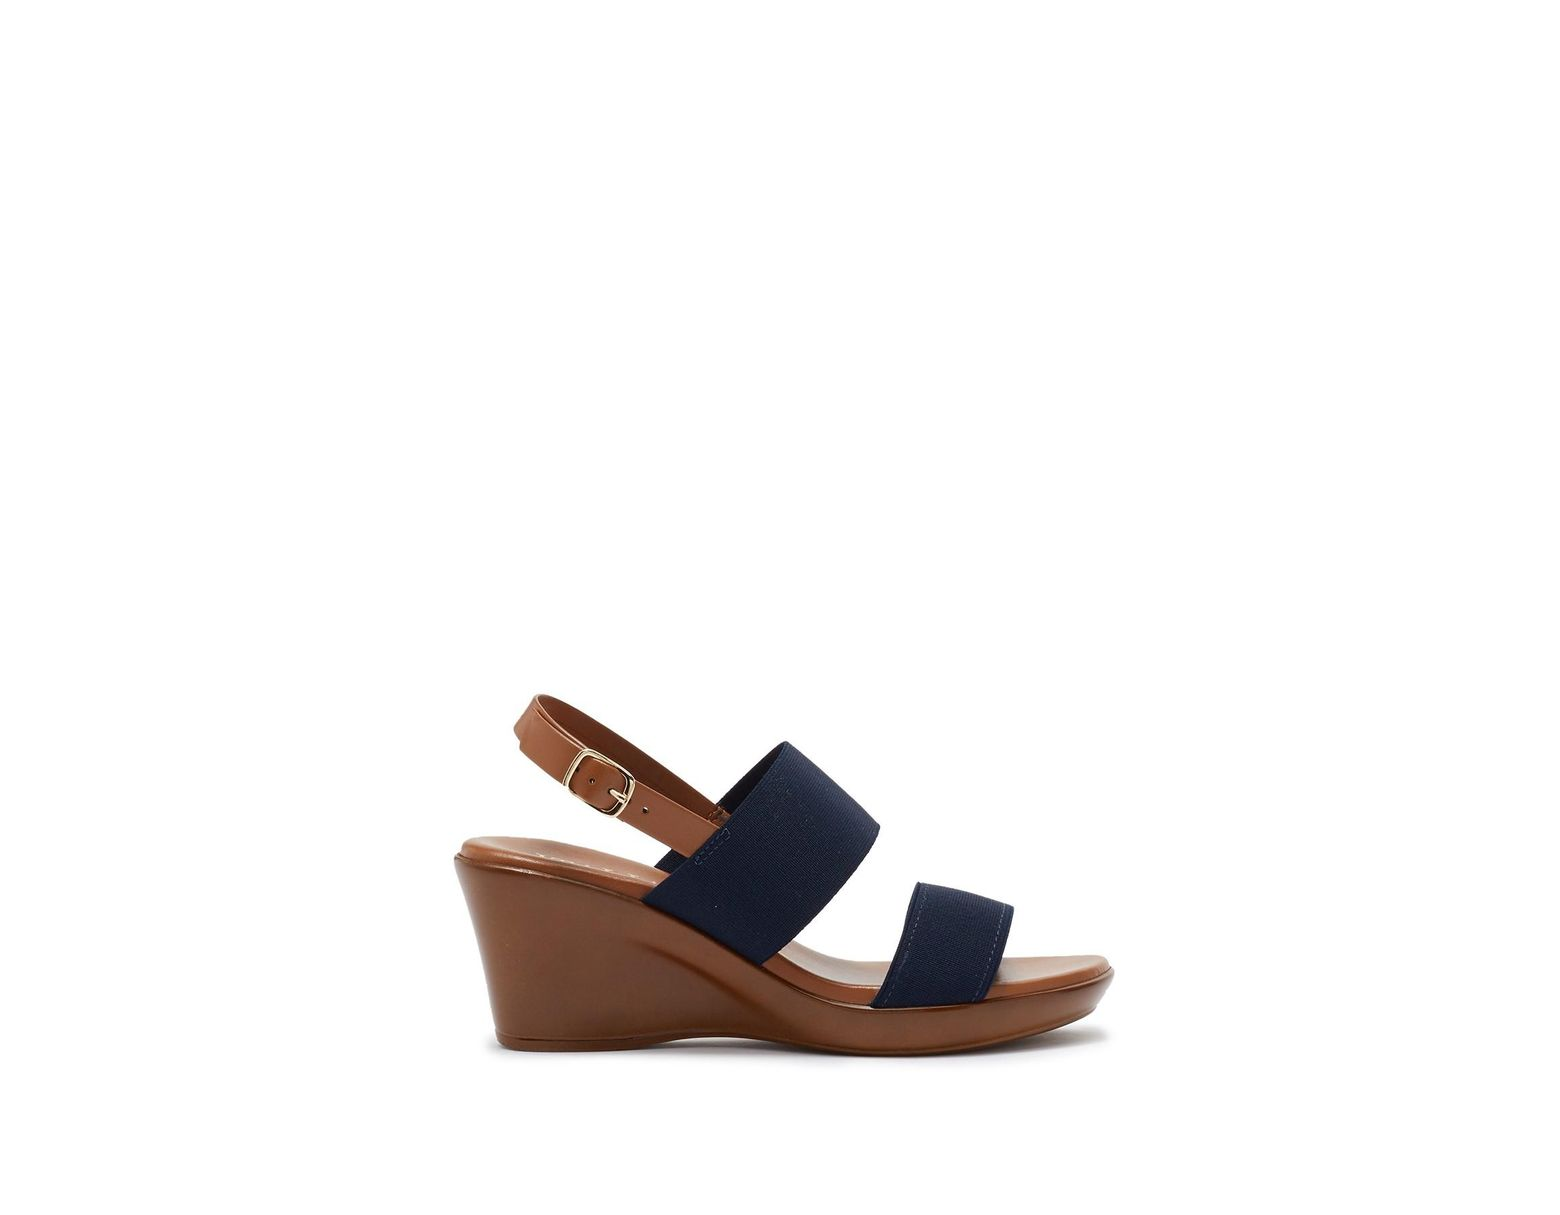 7d9fe4306 Italian Shoemakers Rylee Wedge Sandal in Blue - Lyst